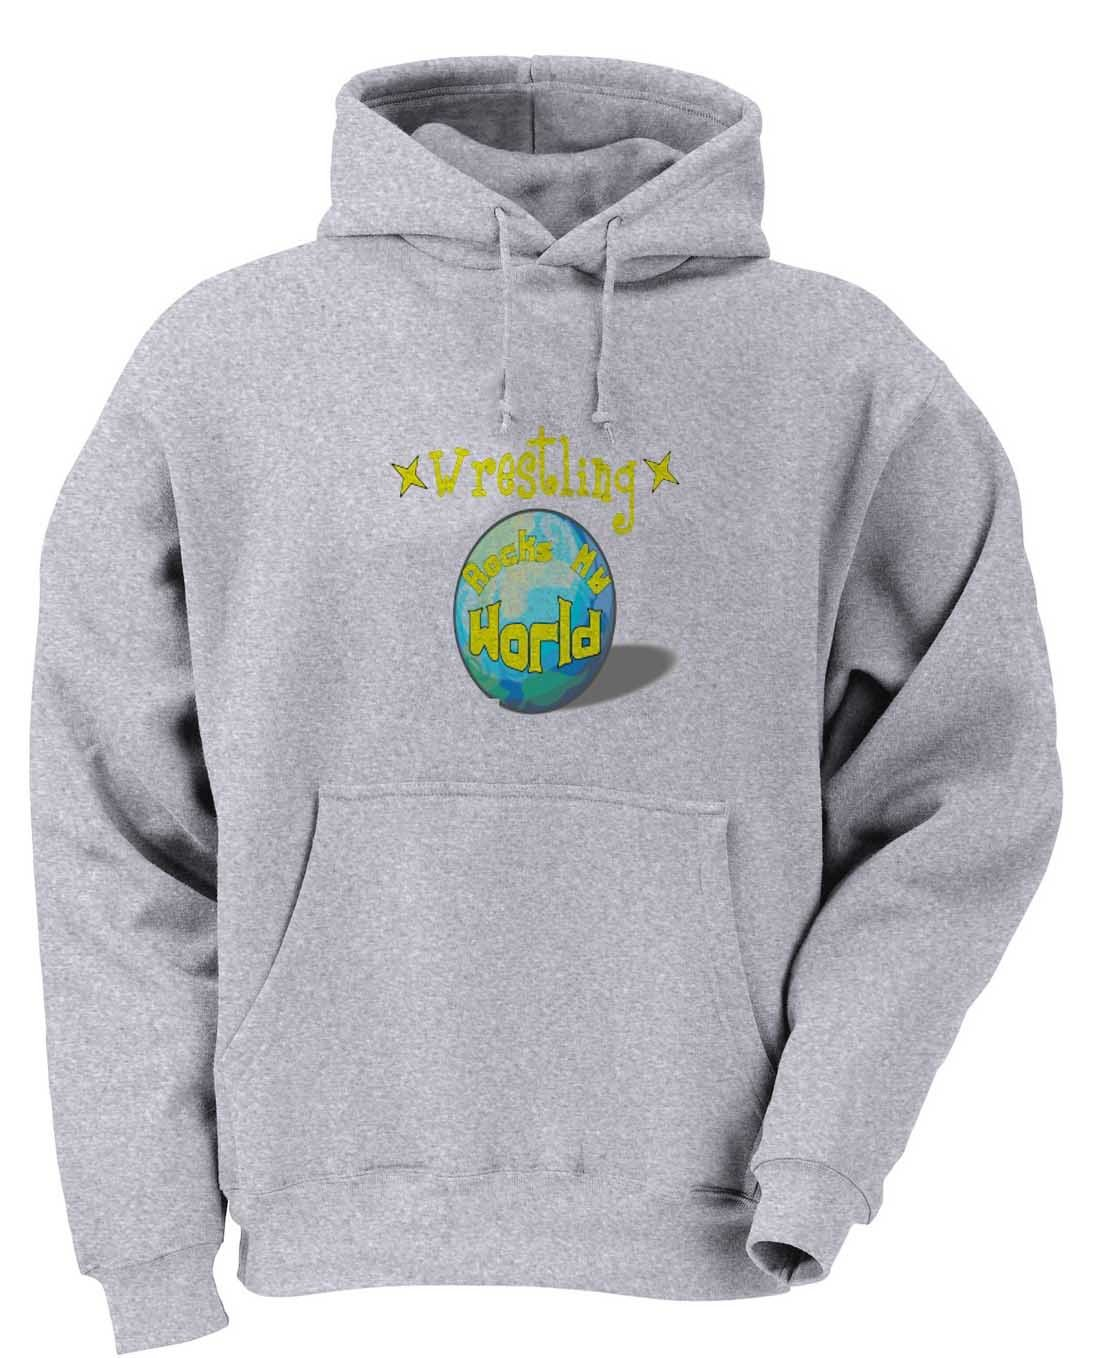 Wrestling Rock My World Youth Hooded Sweatshirt (for Kids) ASH GREY LARGE